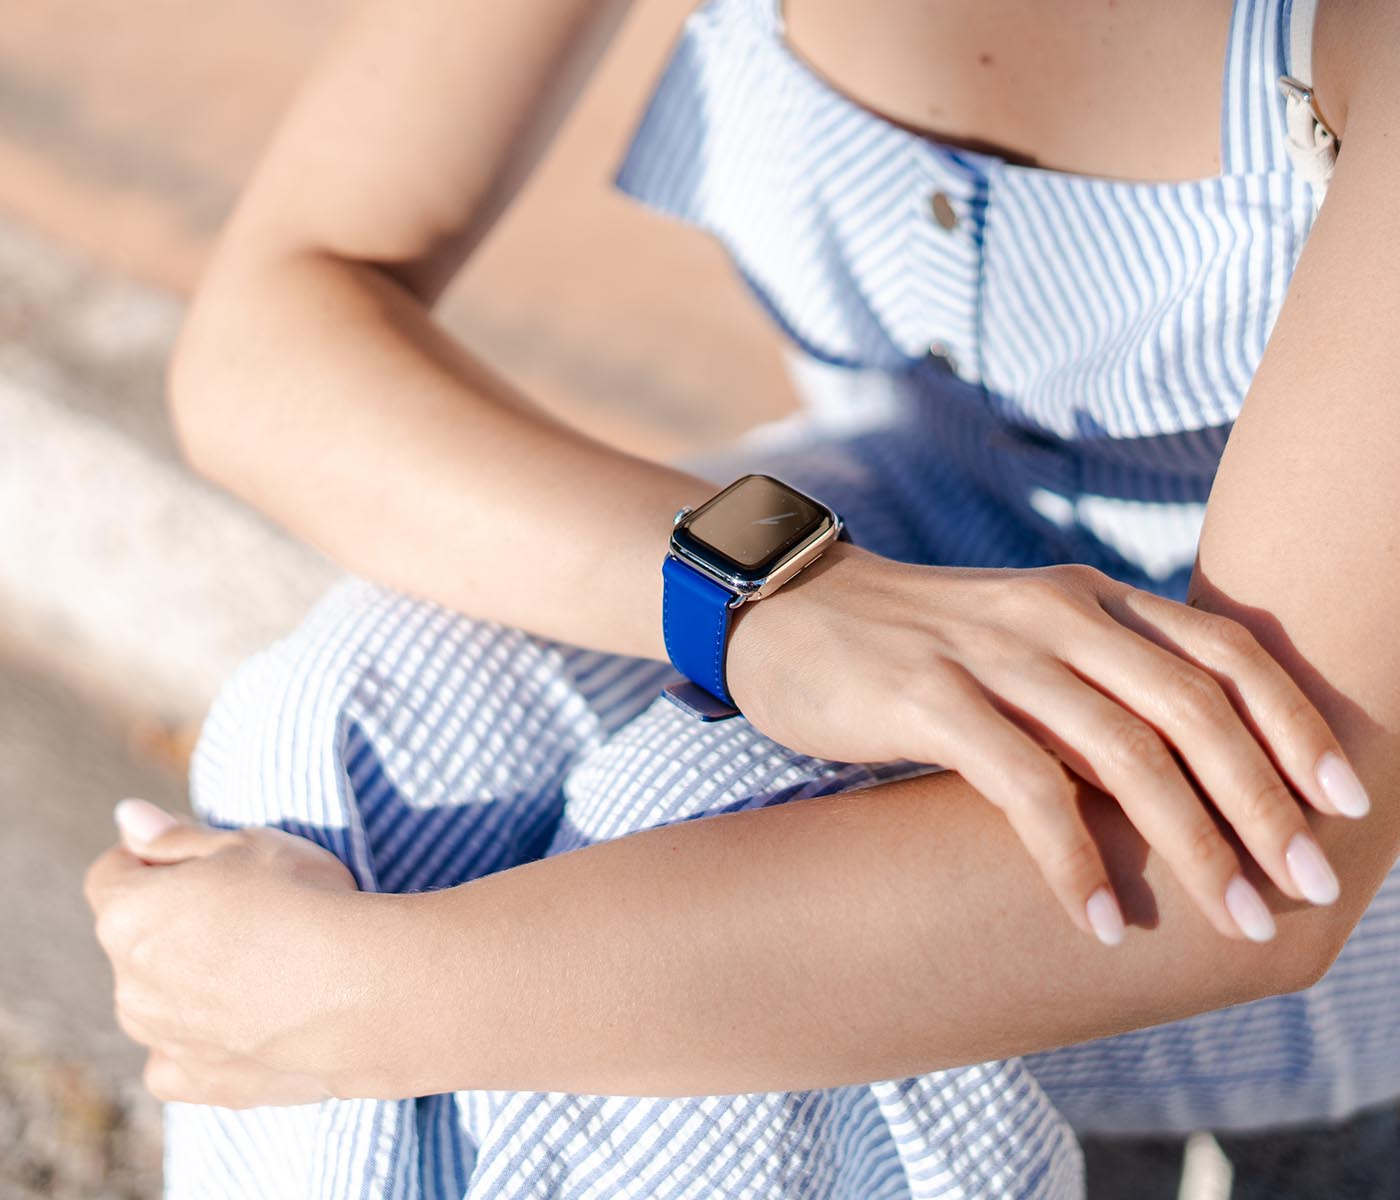 Blueberry Summer-Apple-watch-blue-fluo-band-with-a-summer-outfit-bs